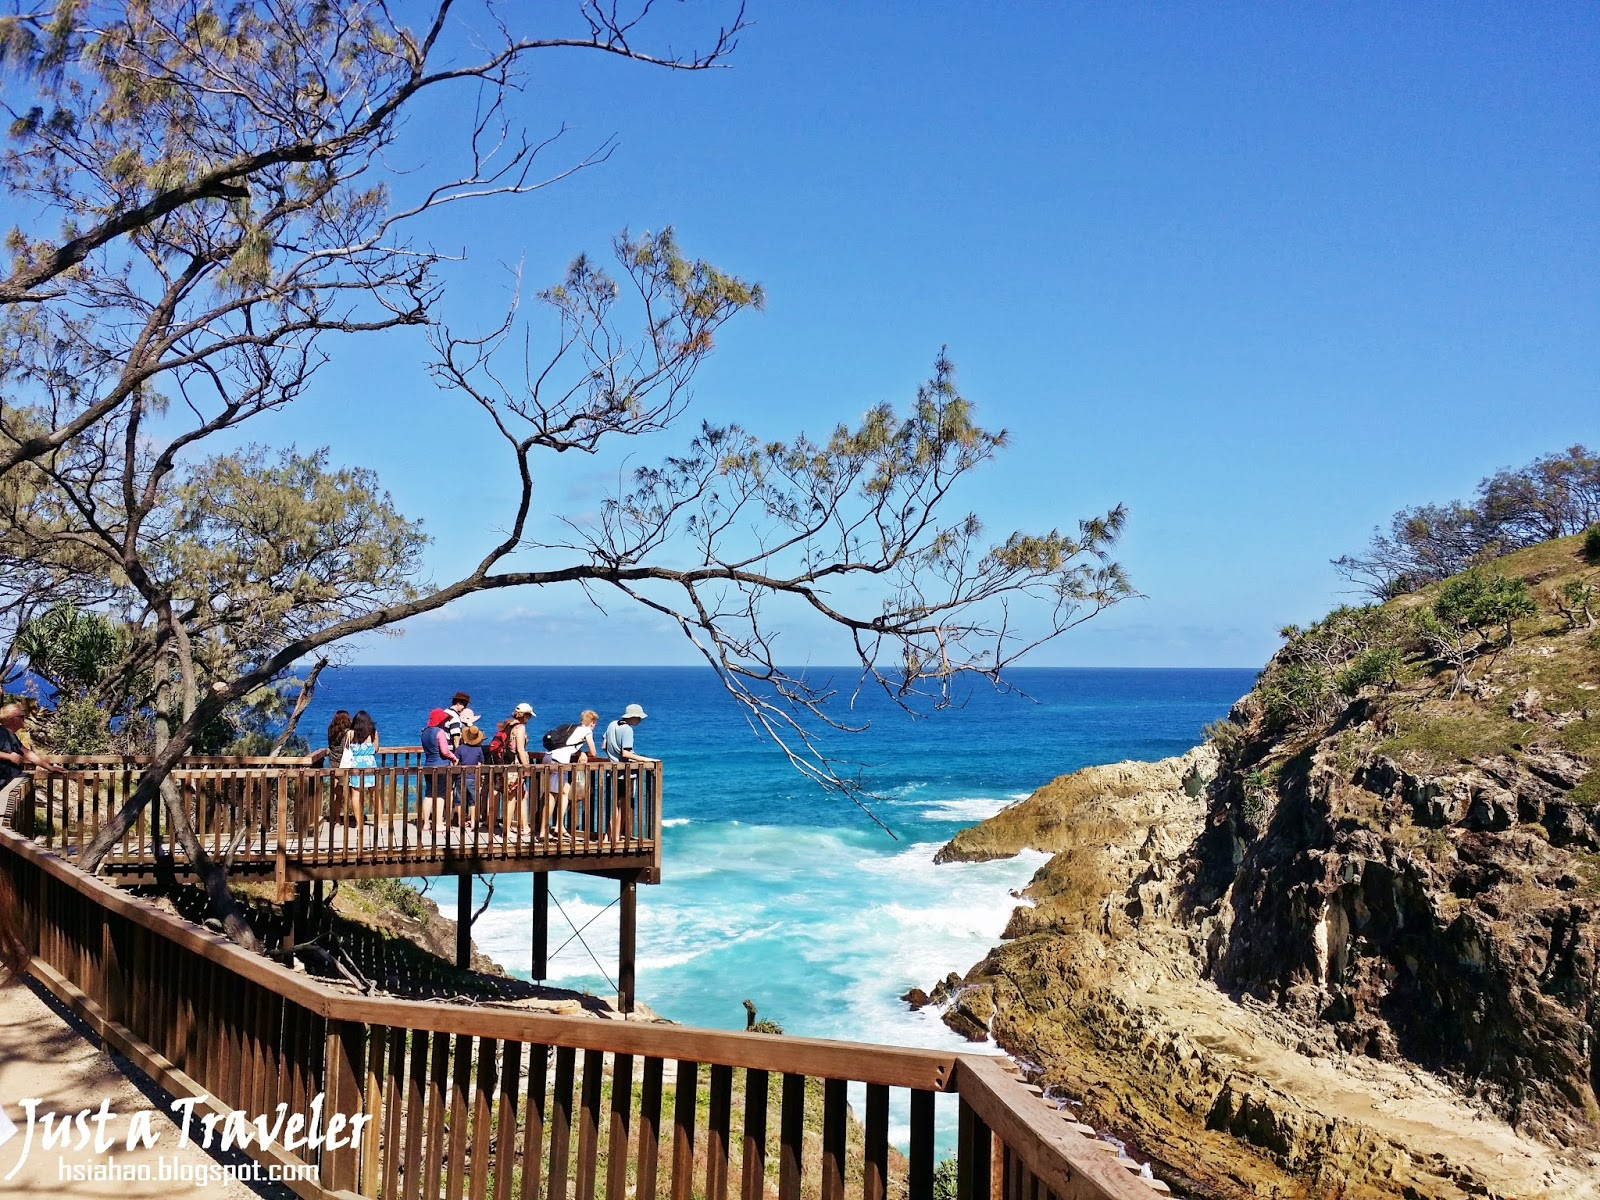 布里斯本-布里斯本景點-推薦-北斯德布魯克島-旅遊-自由行-Brisbane-Attraction-North-Stradbroke-Island--Gorge-Point-LookoutTourist-destination